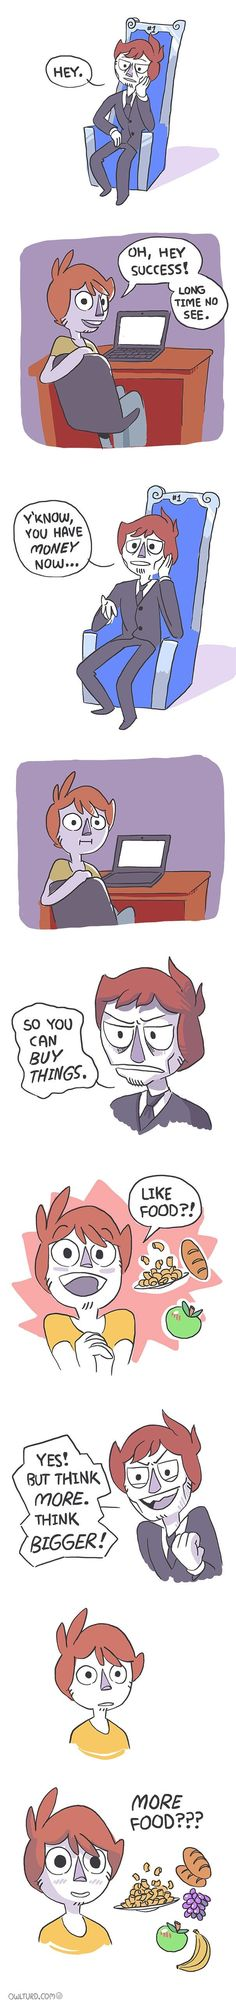 If you're using the internet, and haven't seen Owlturd Comix yet - you are missing out on some of the best comics ever created. Life Comics, Fun Comics, Funny Cute, The Funny, Hilarious, Funny Cartoons, Funny Memes, Funny Gifs, Memes Humor